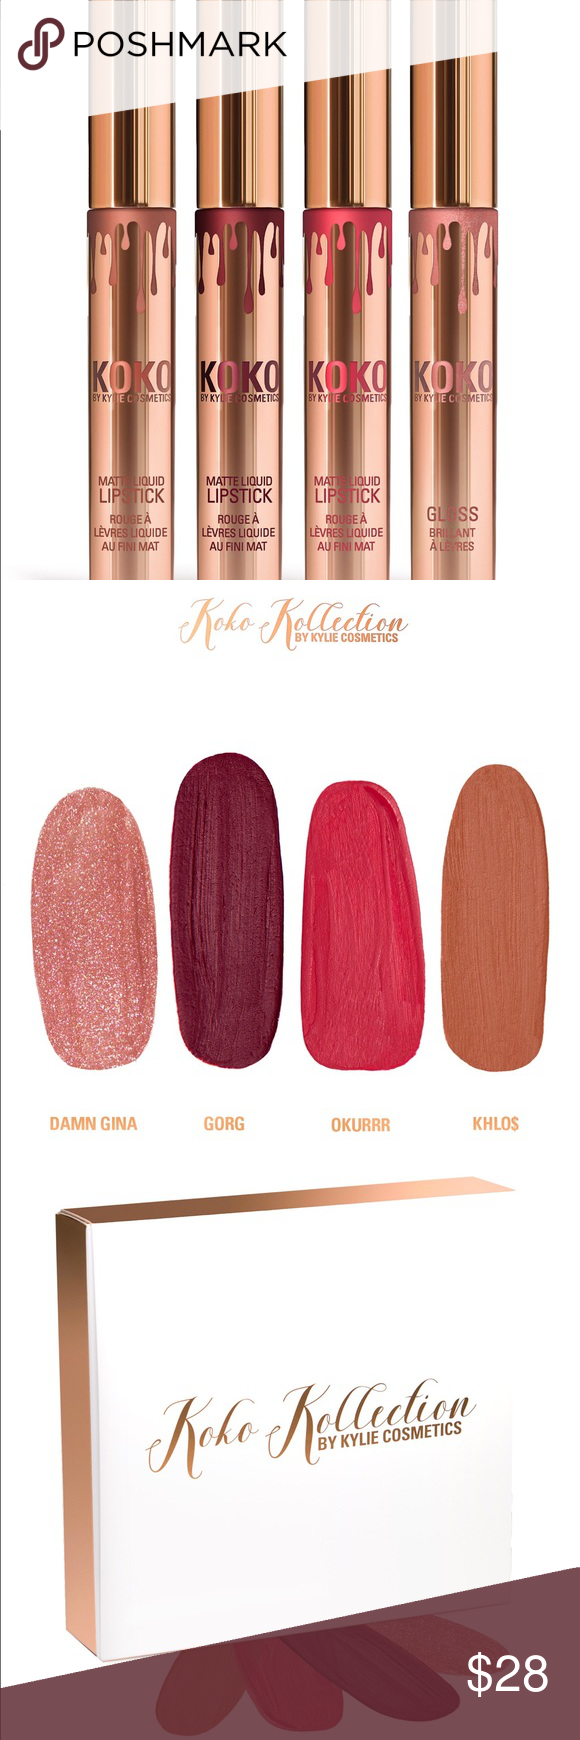 Gorg KoKo Kollection NWT